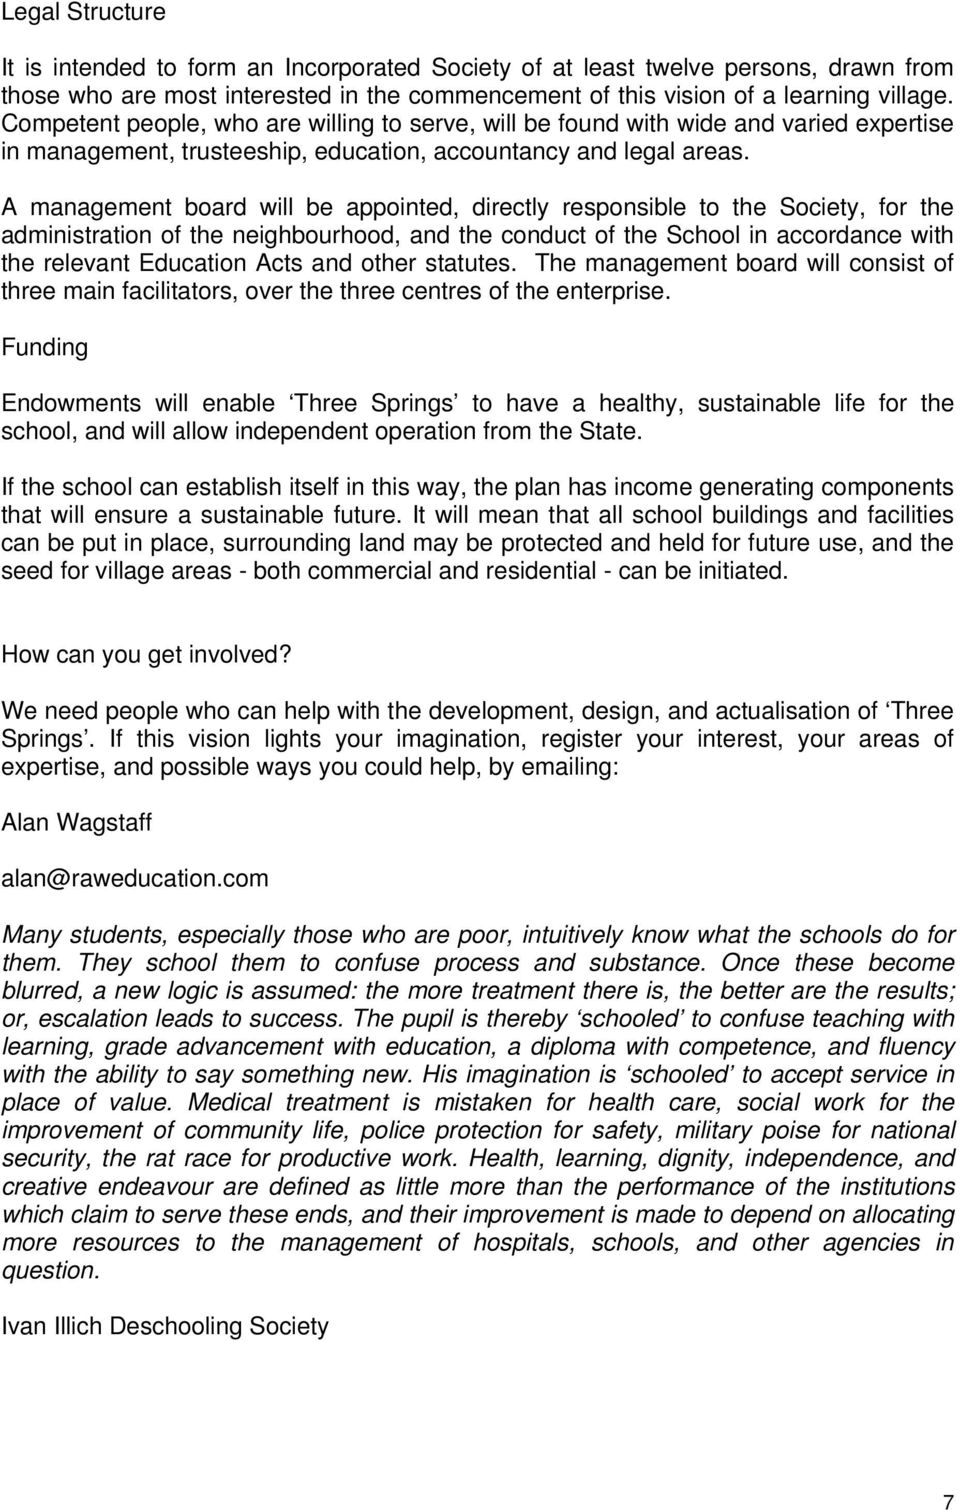 A management board will be appointed, directly responsible to the Society, for the administration of the neighbourhood, and the conduct of the School in accordance with the relevant Education Acts